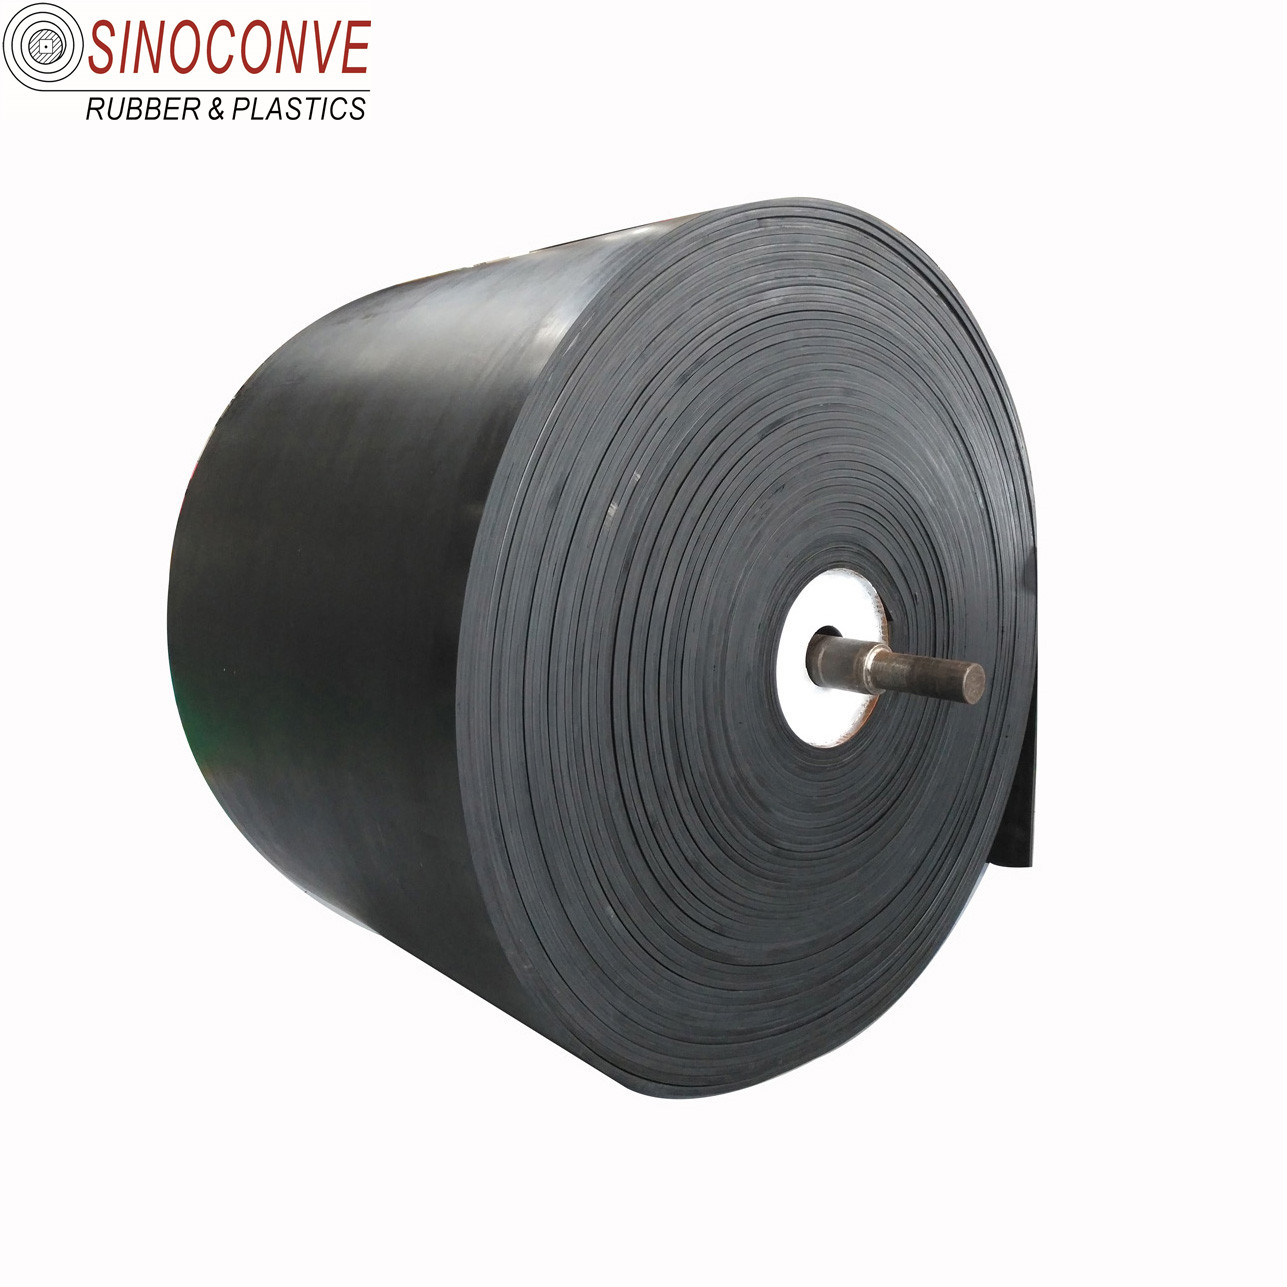 18mpa 20mpa 8mpa 6ply rubber conveyor <strong>belt</strong> ep500